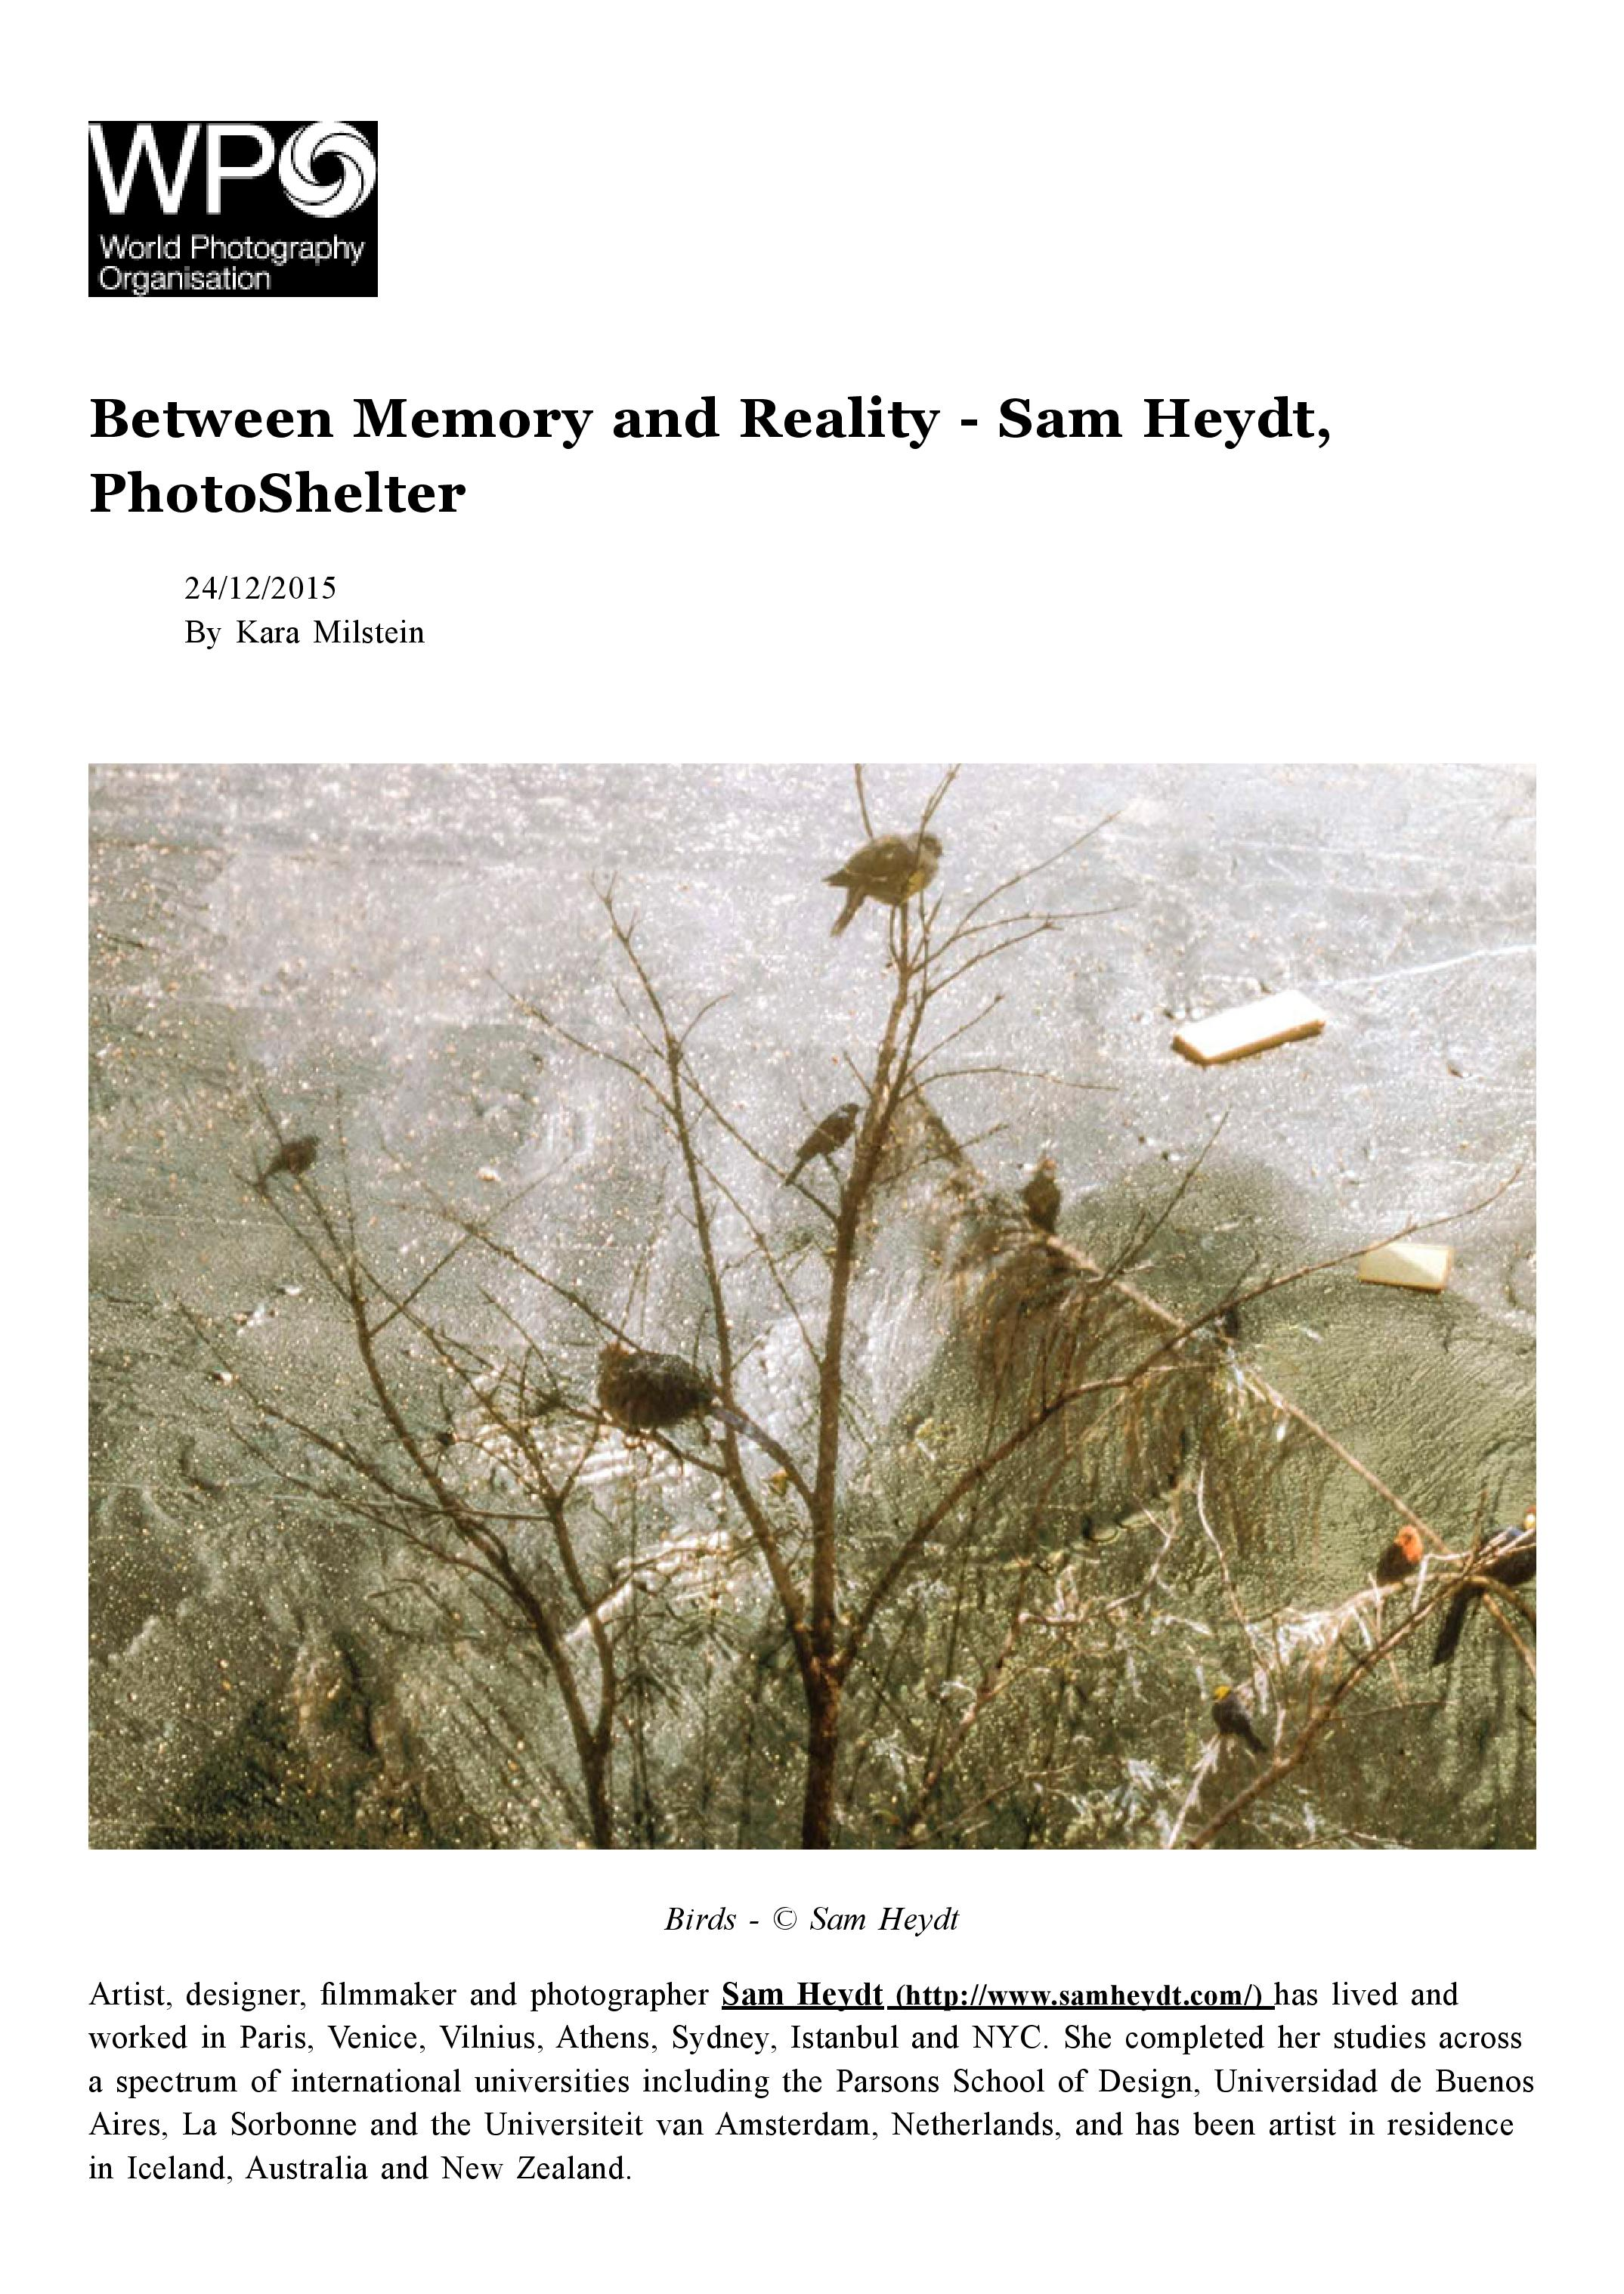 Between Memory and Reality - WPO-page-001.jpg